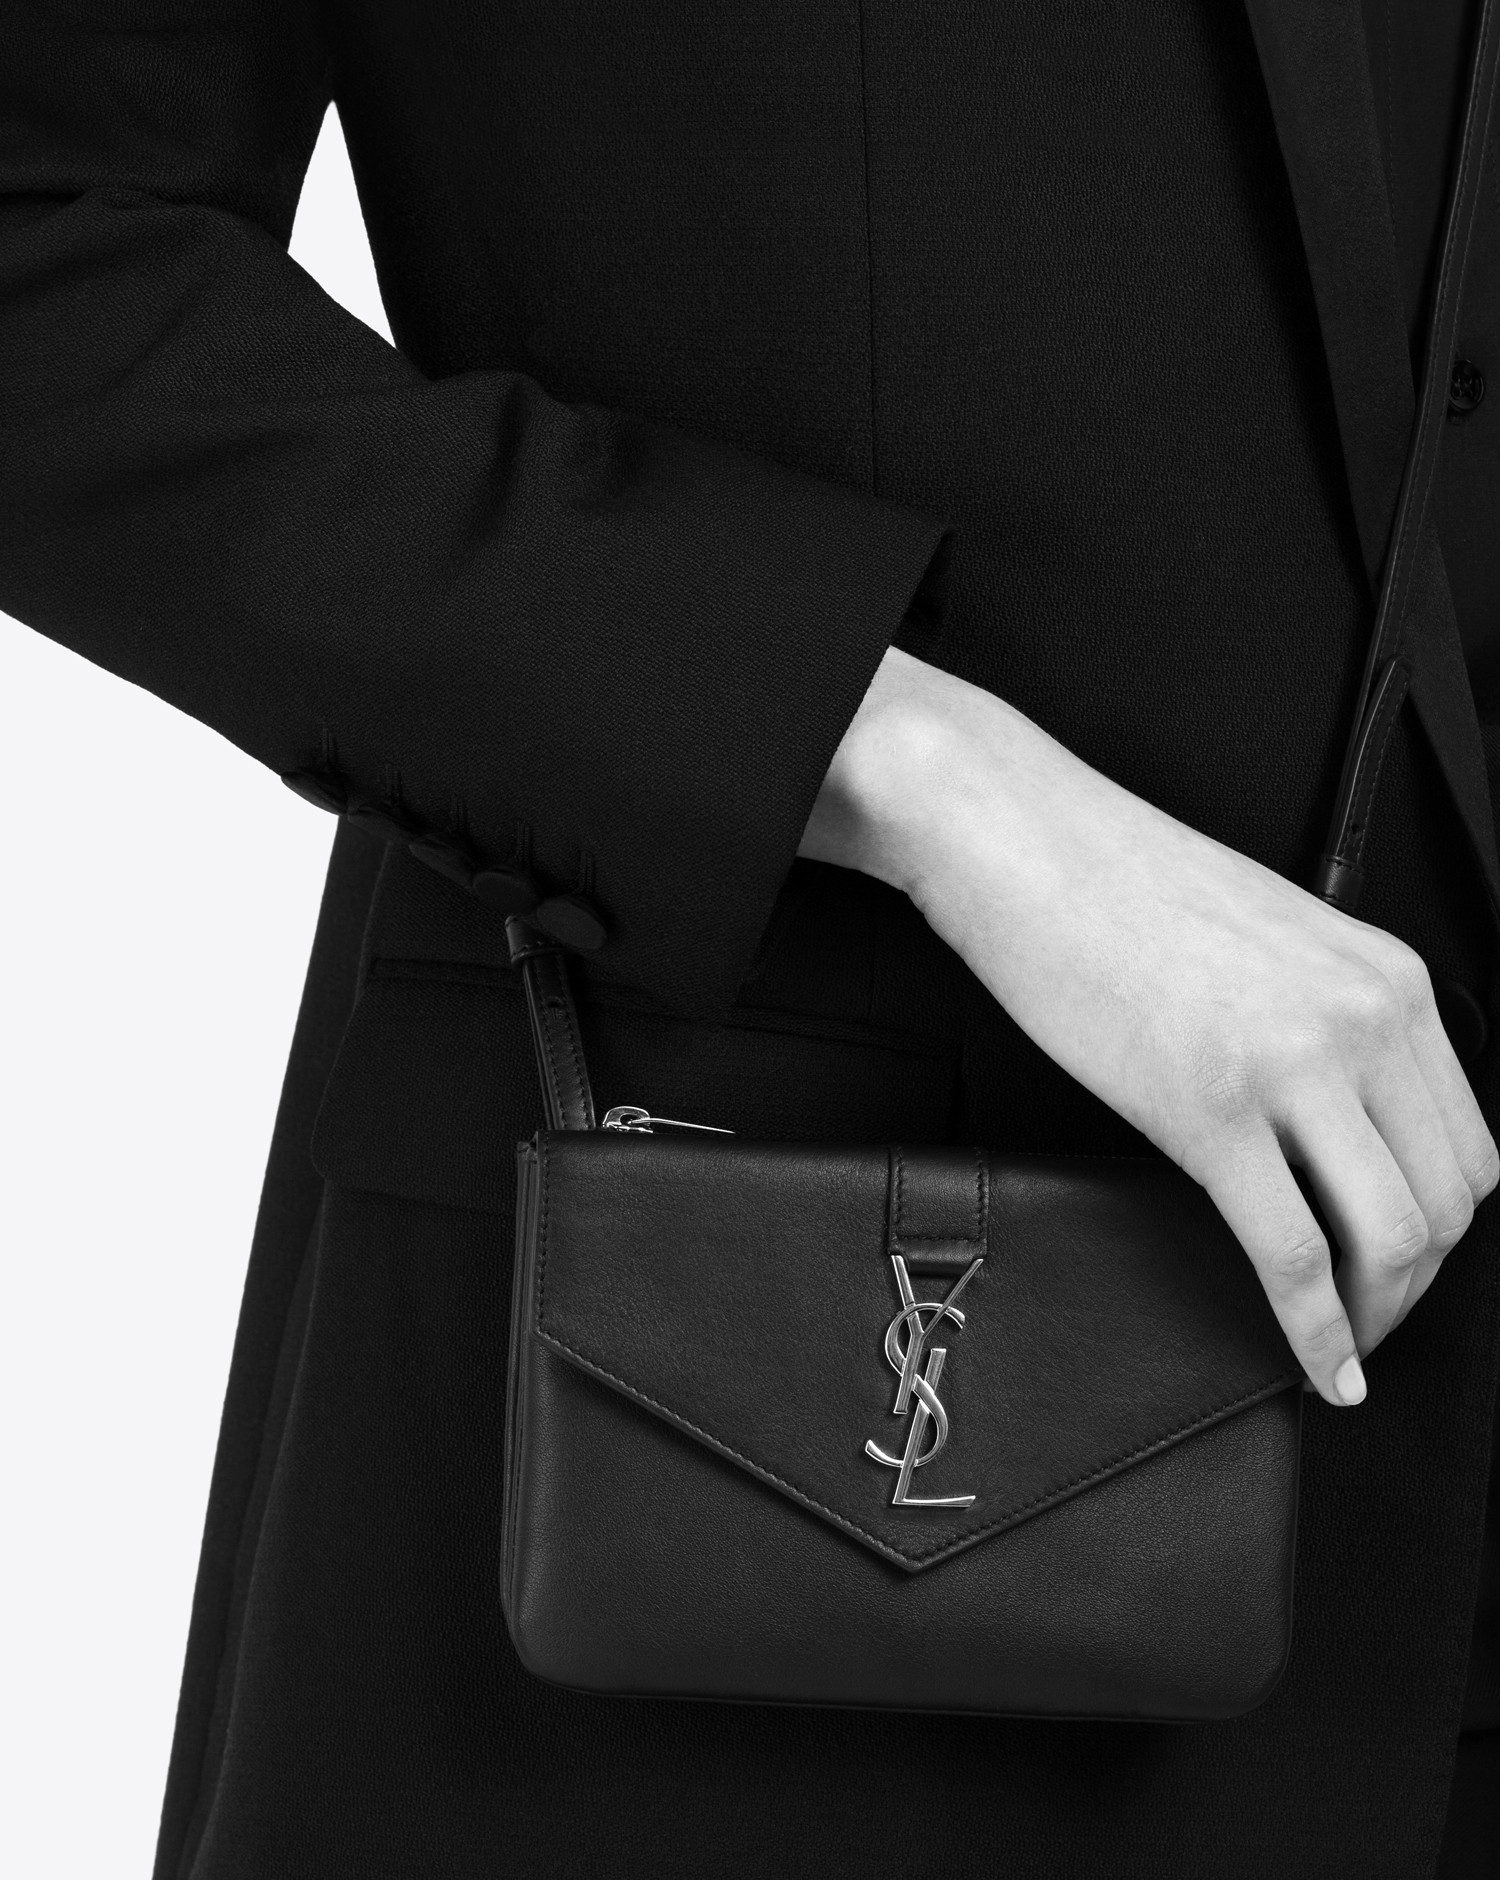 Saint Laurent Ysl Tri-pocket Bag In Dove White Leather